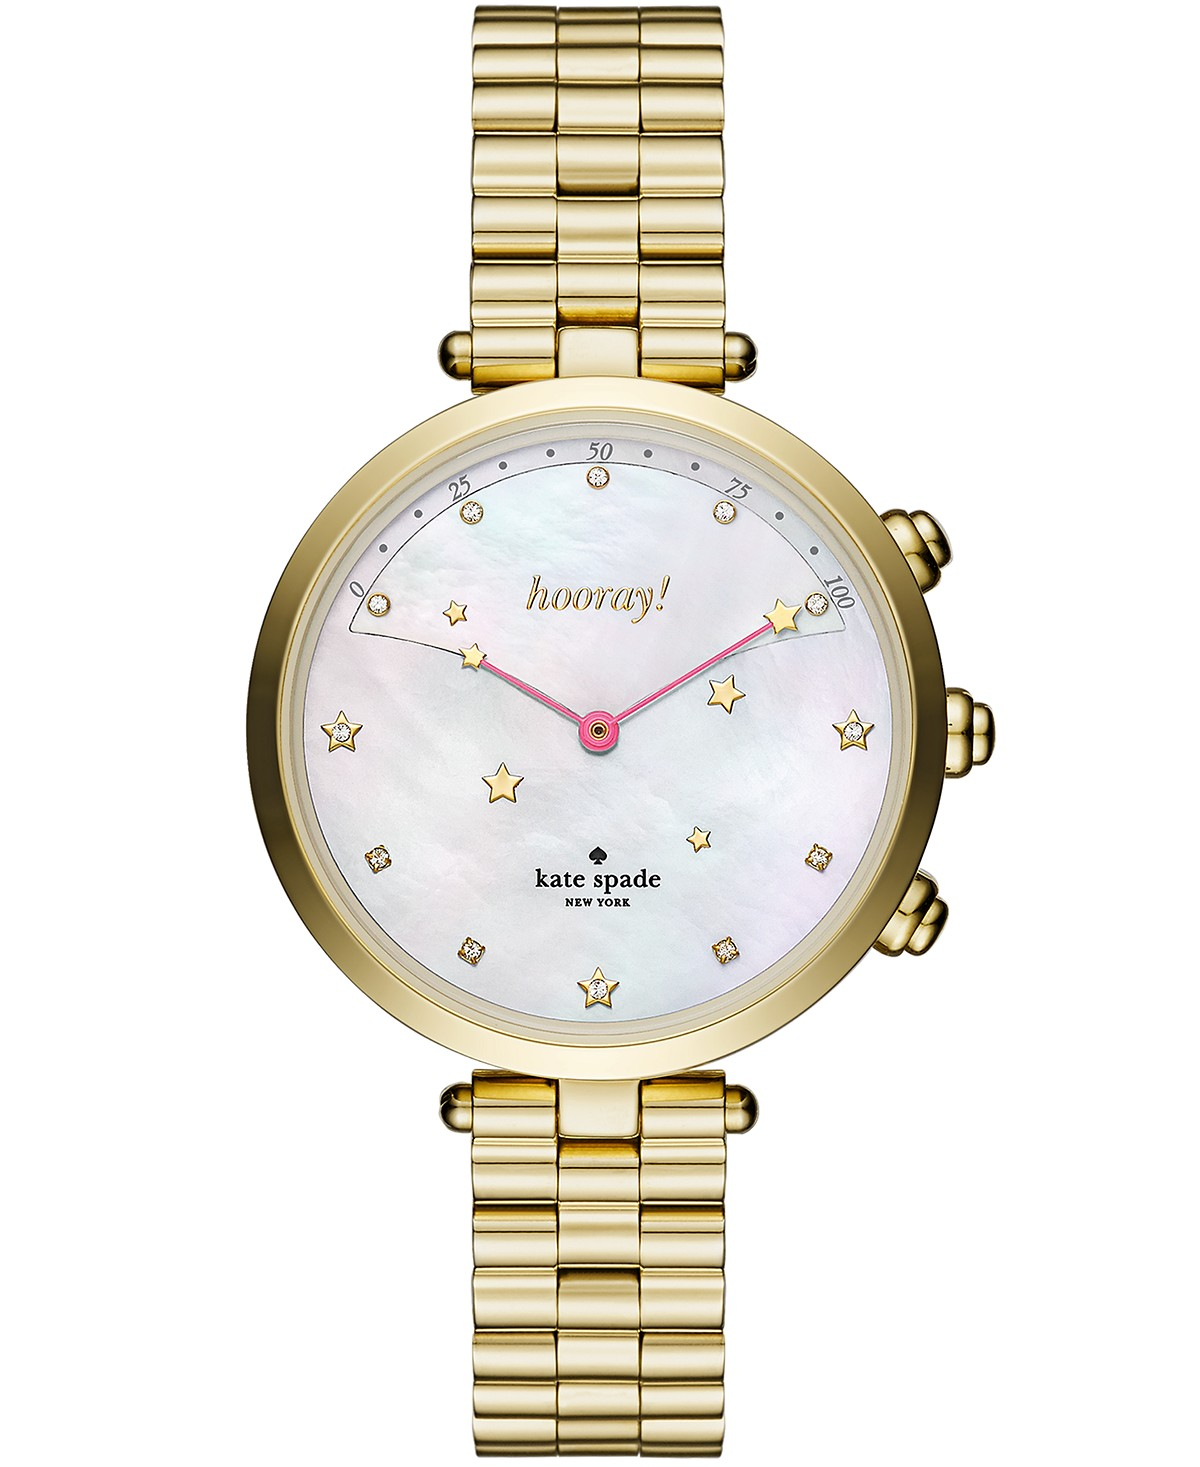 Holland Slim Gold-Tone Stainless Steel Bracelet Hybrid Smart Watch  <table align='center'> <tr><th>Size:38mm</th></tr><tr><td>$250.00</td></tr></table>